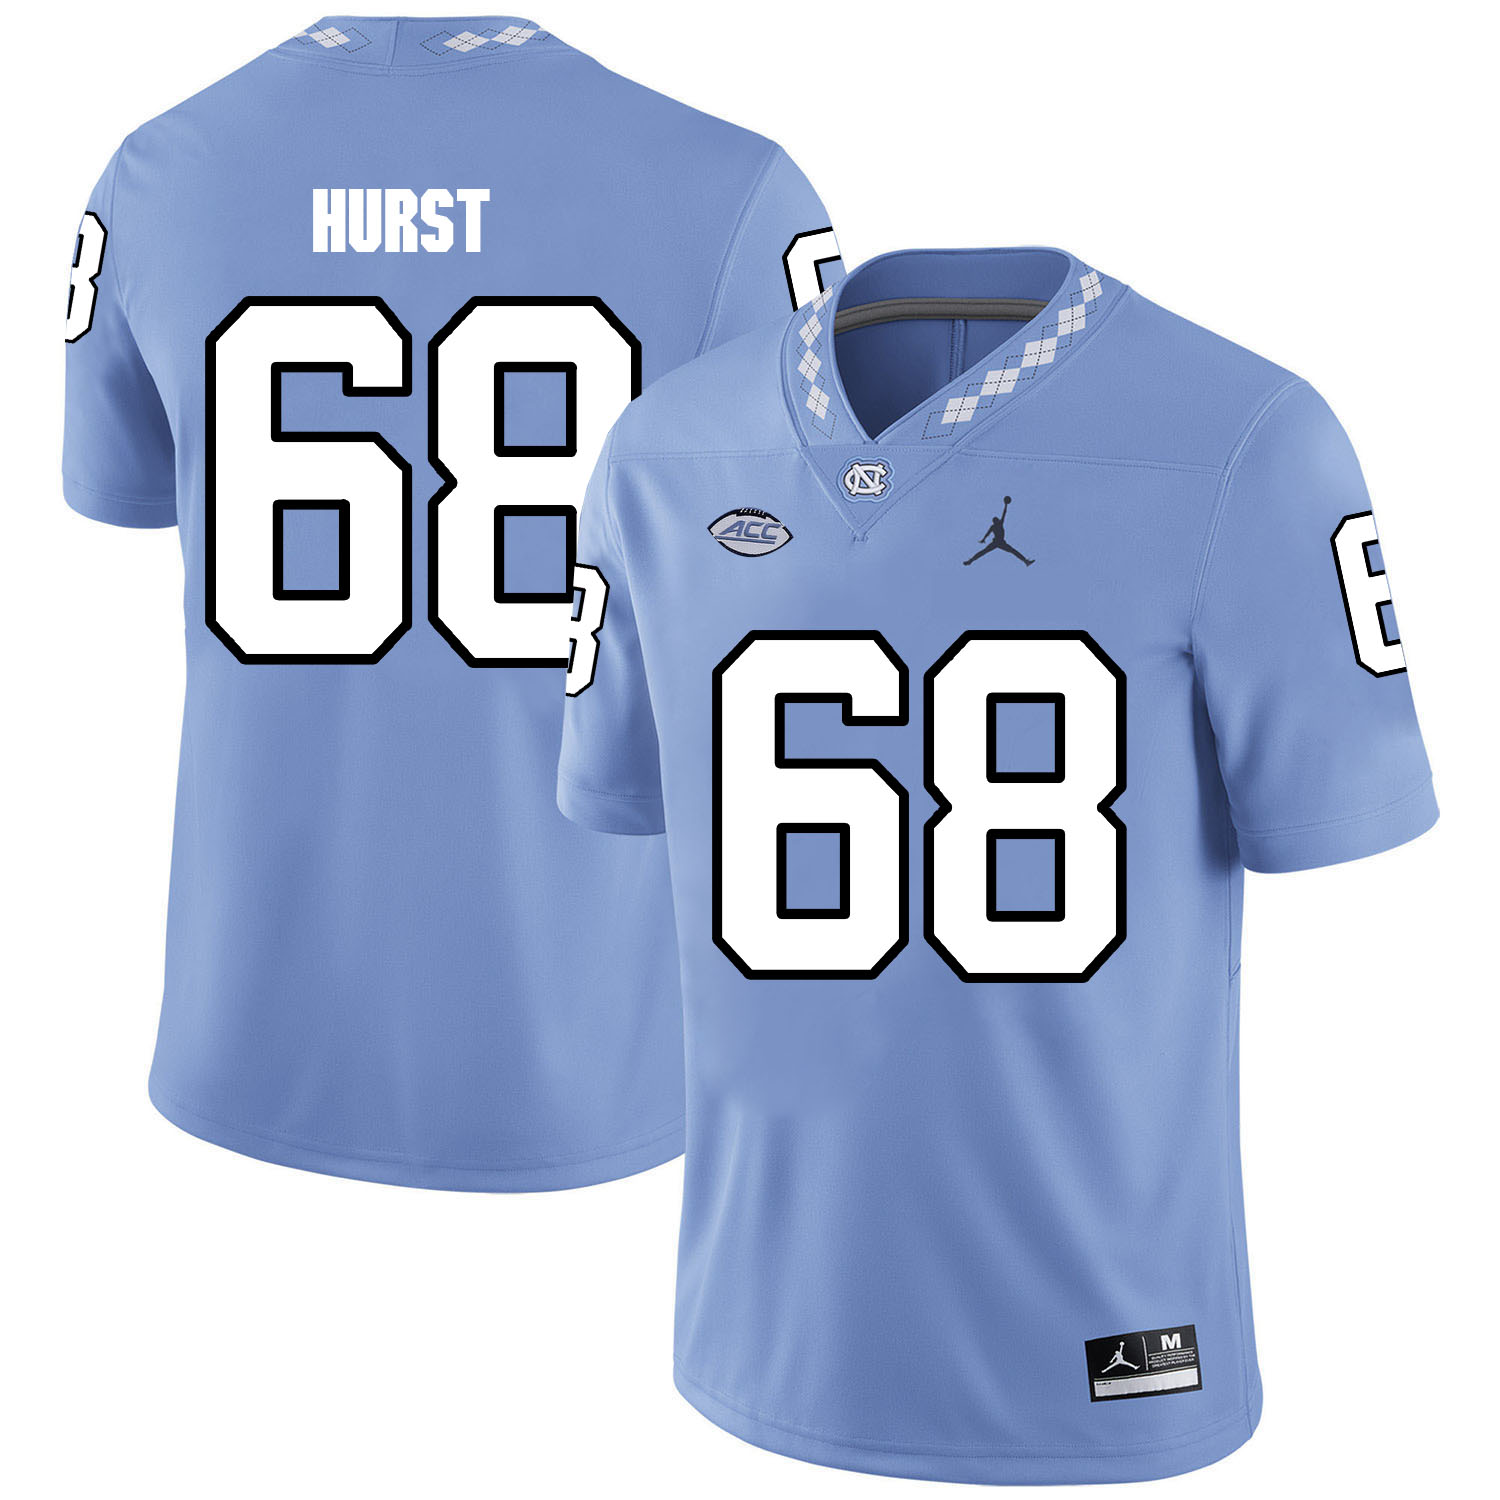 North Carolina Tar Heels 68 James Hurst Blue College Football Jersey